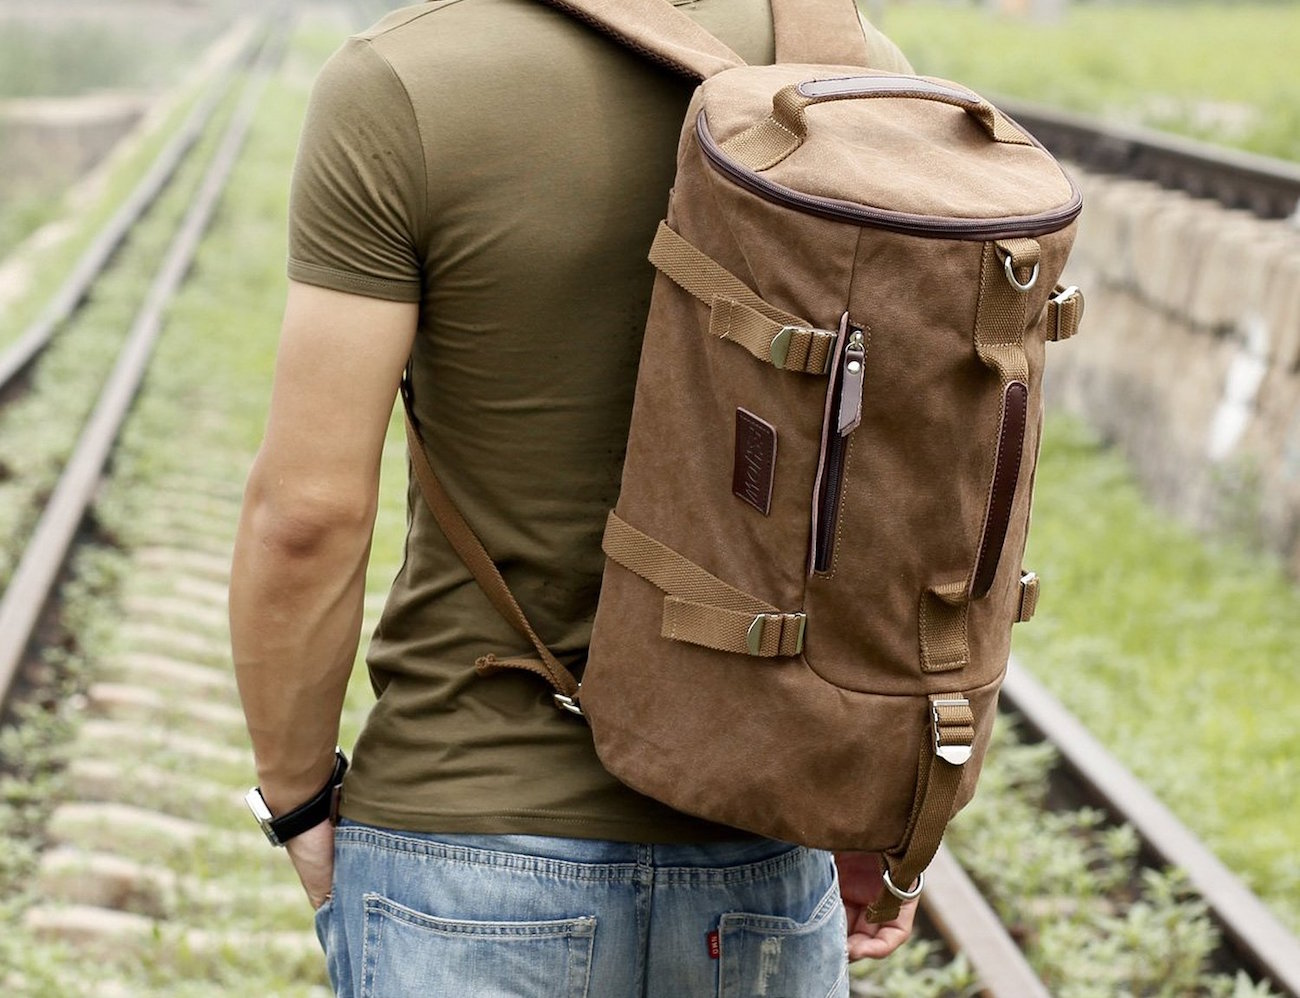 e4d500aad Eshow Canvas Travel Duffle and Backpack » Gadget Flow